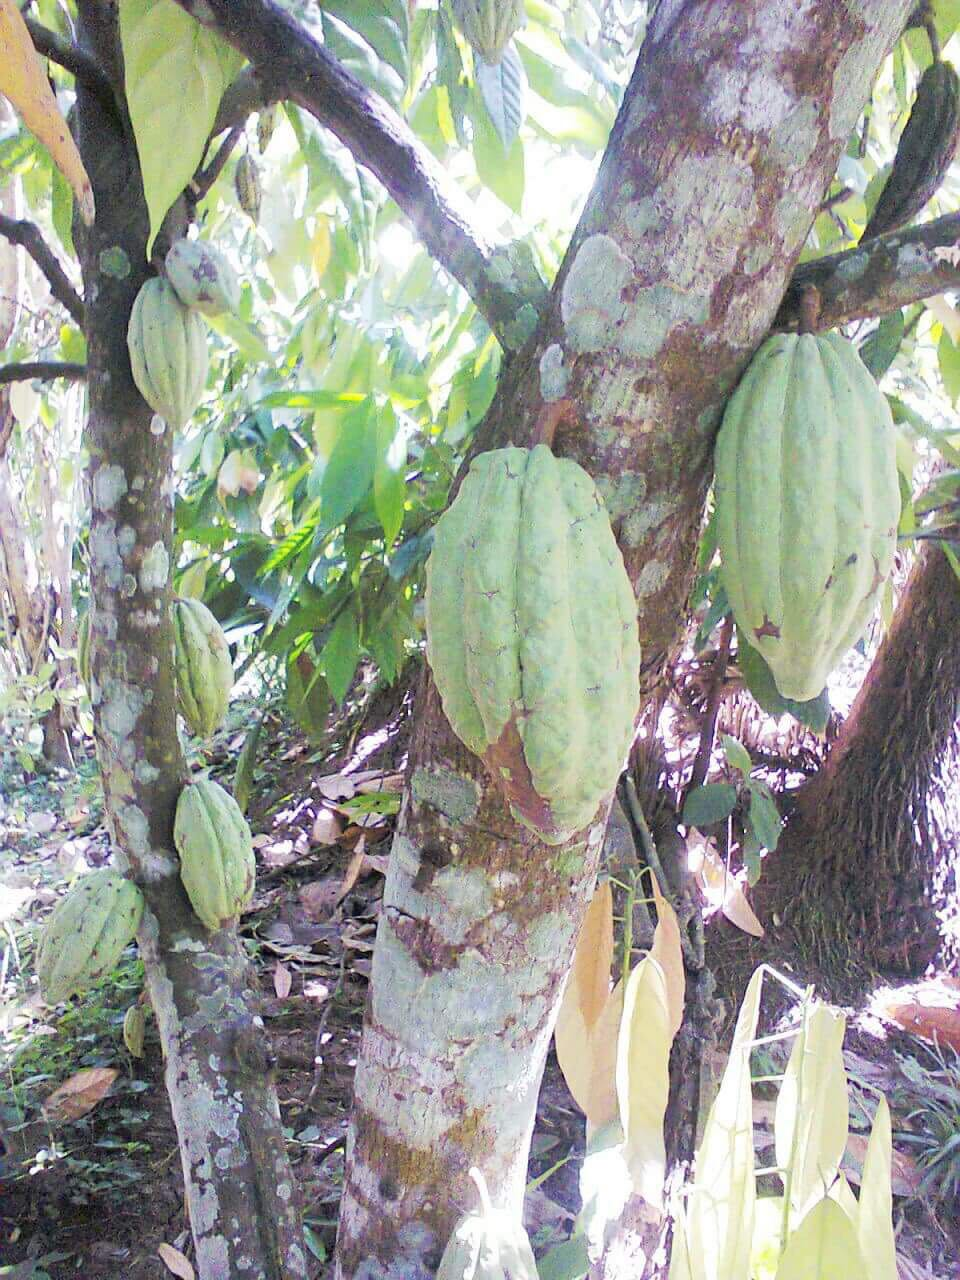 Cacao tree with pods growing in Philippines. © 2016 Geoseph.com